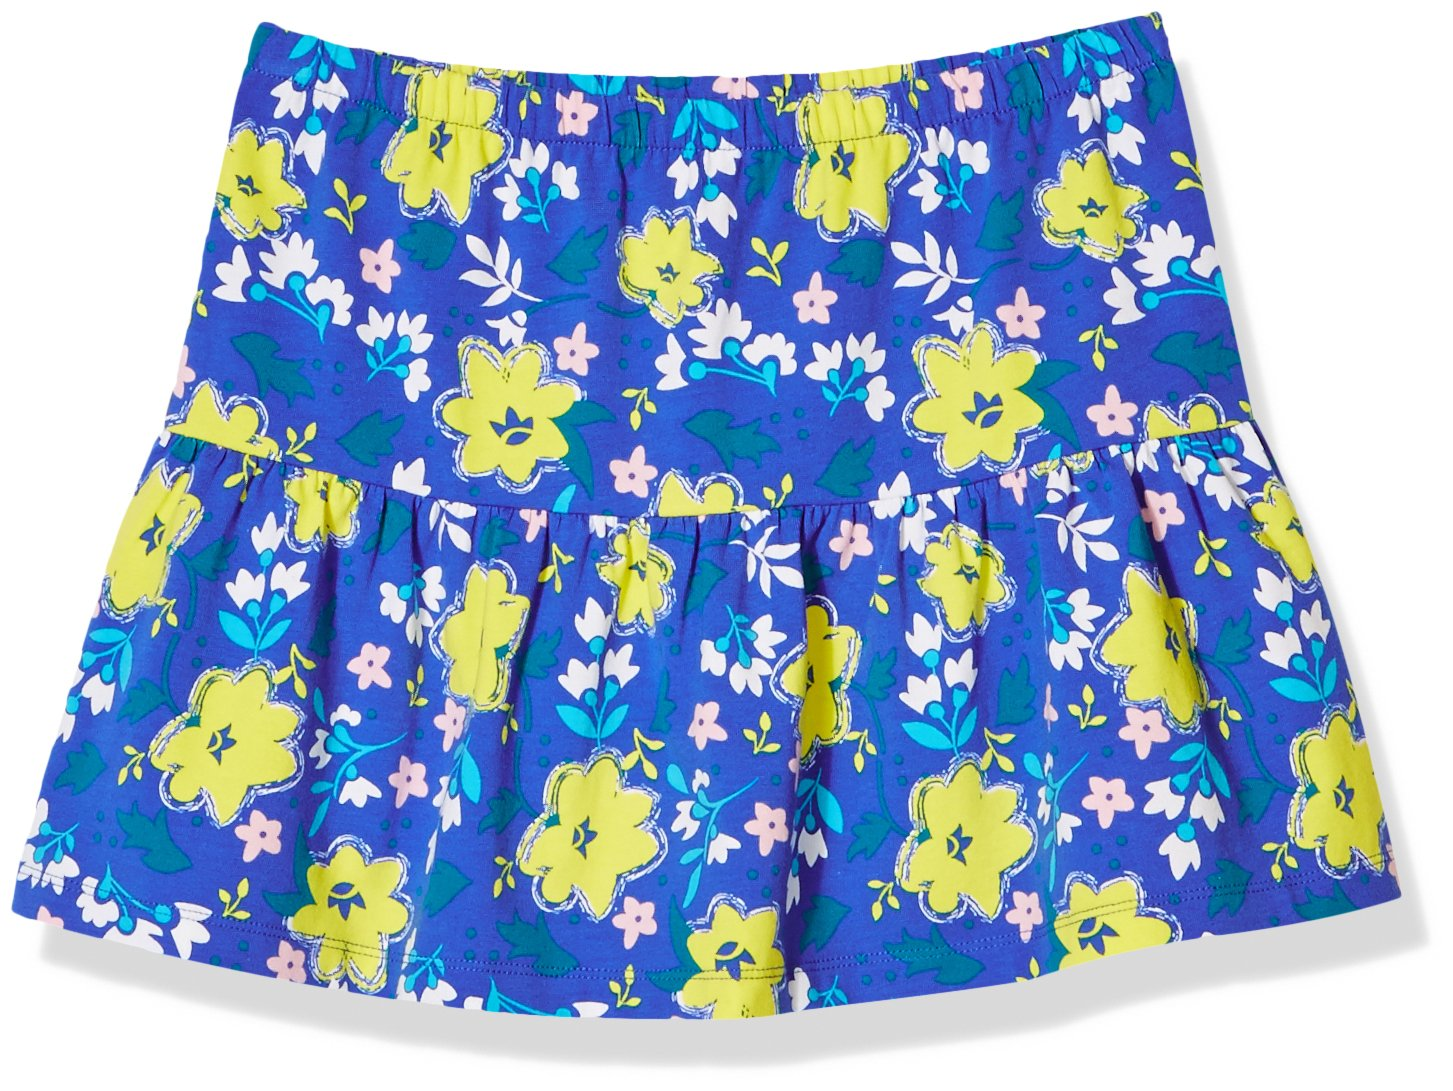 A for Awesome Girls Casual Ruffle Pull On Skirt X-Large Ellis Blue Floral AOP